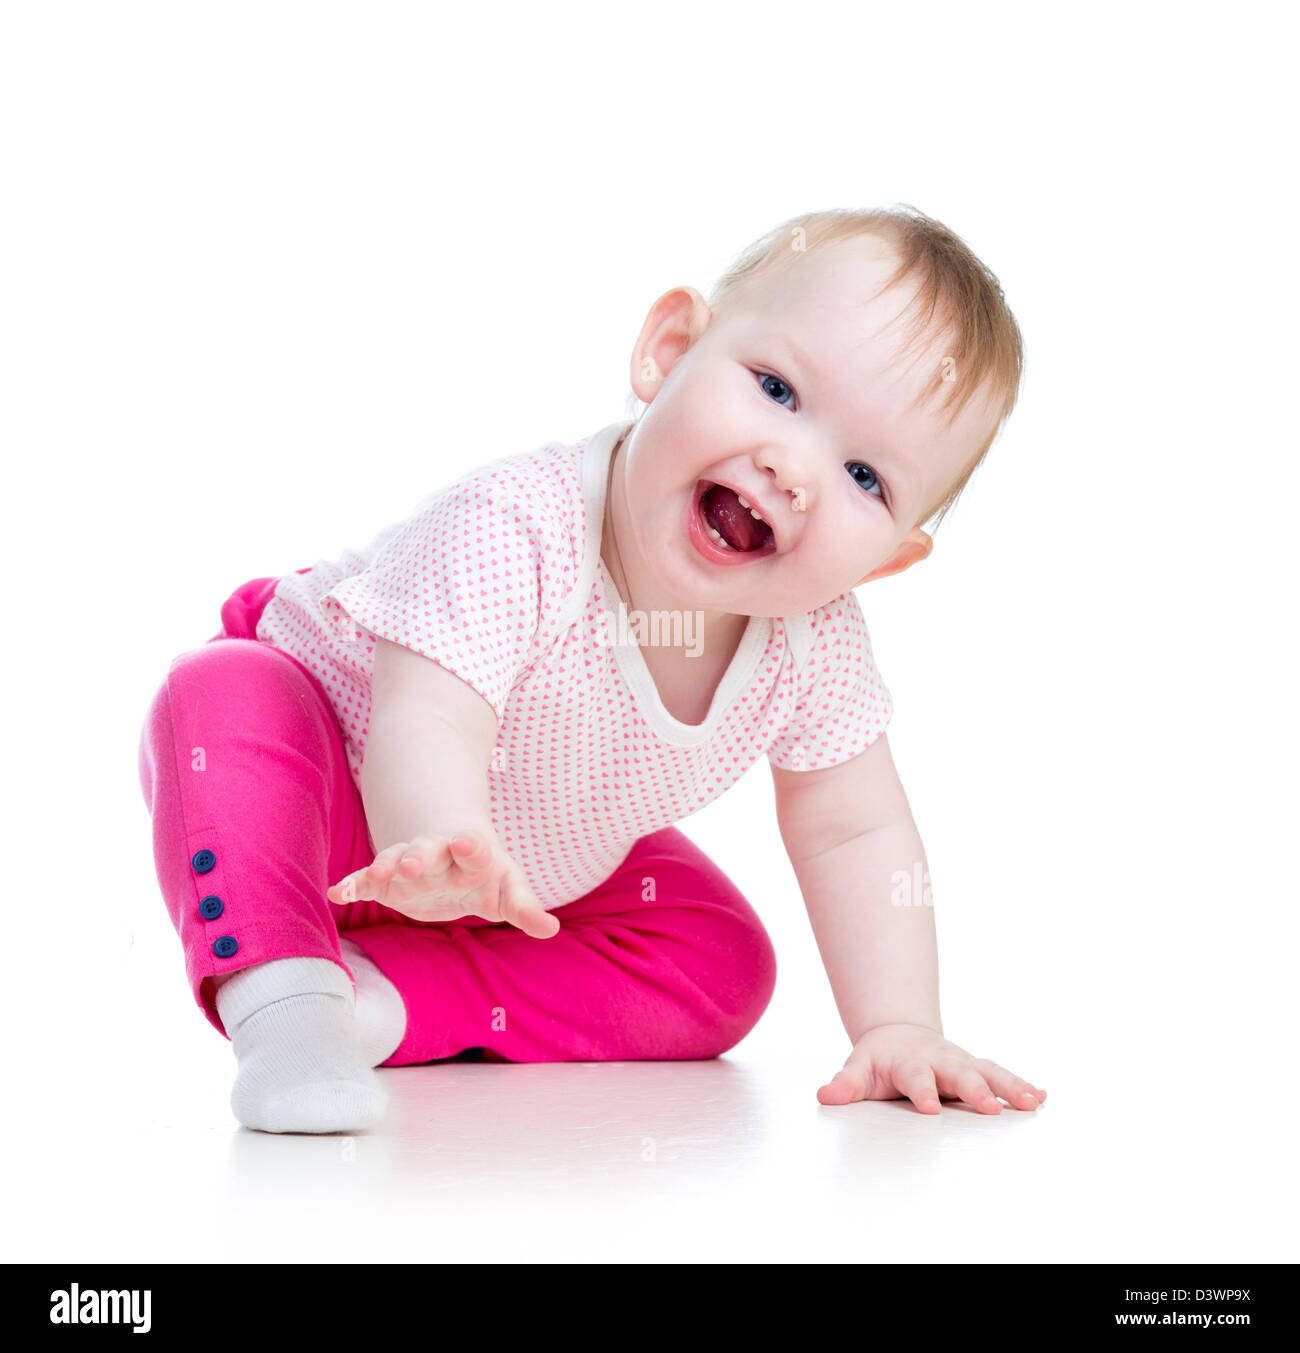 Funny baby sitting on the floor, isolated over white - Stock Image